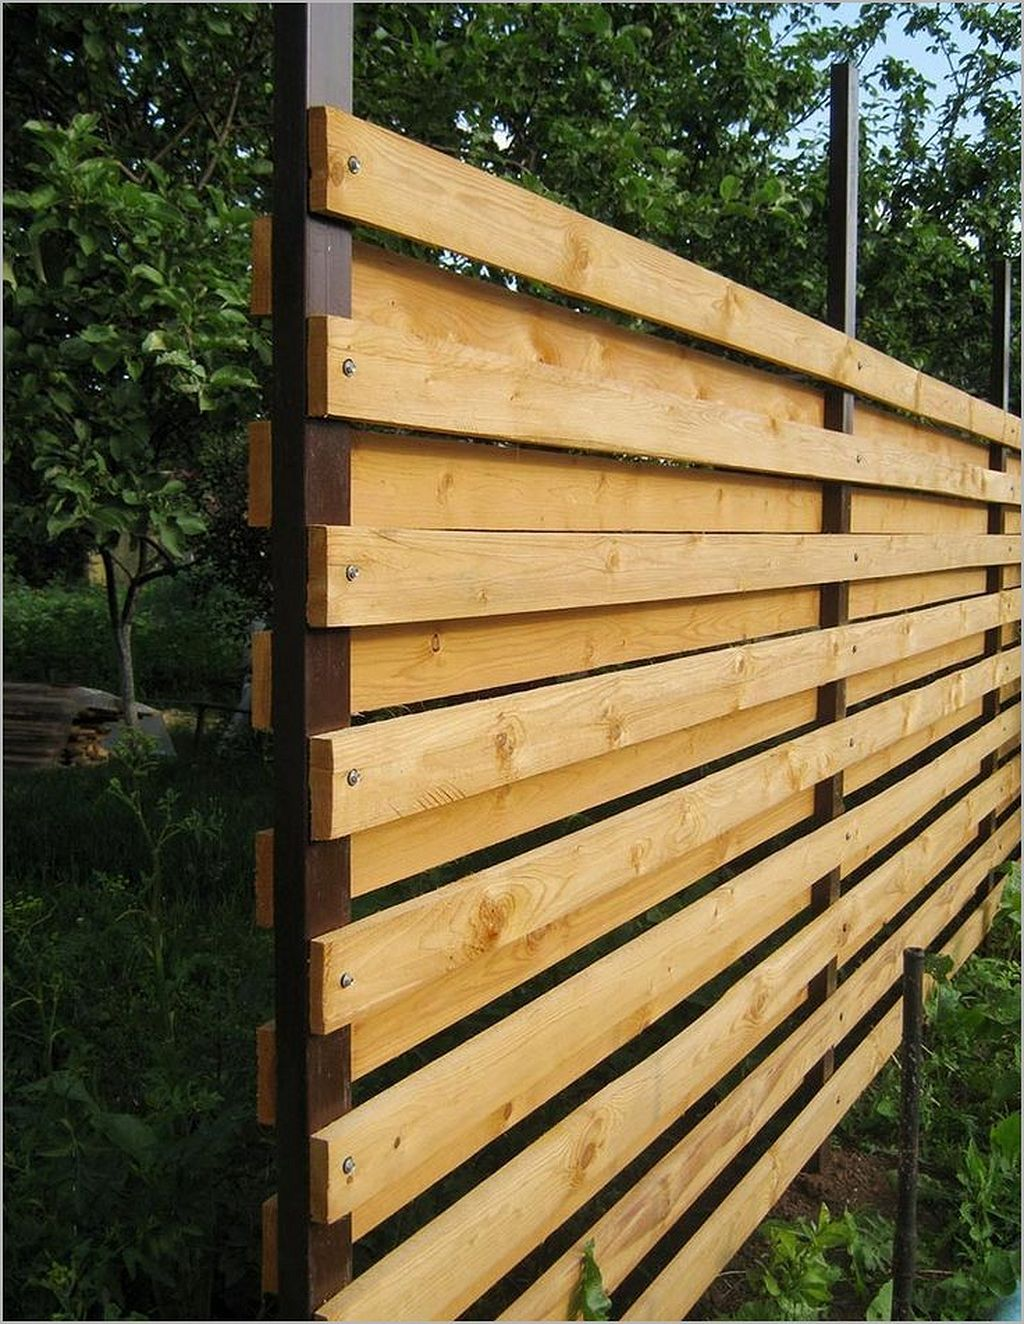 39 Low Cost Diy Privacy Fence Ideas Diy Privacy Fence Fence